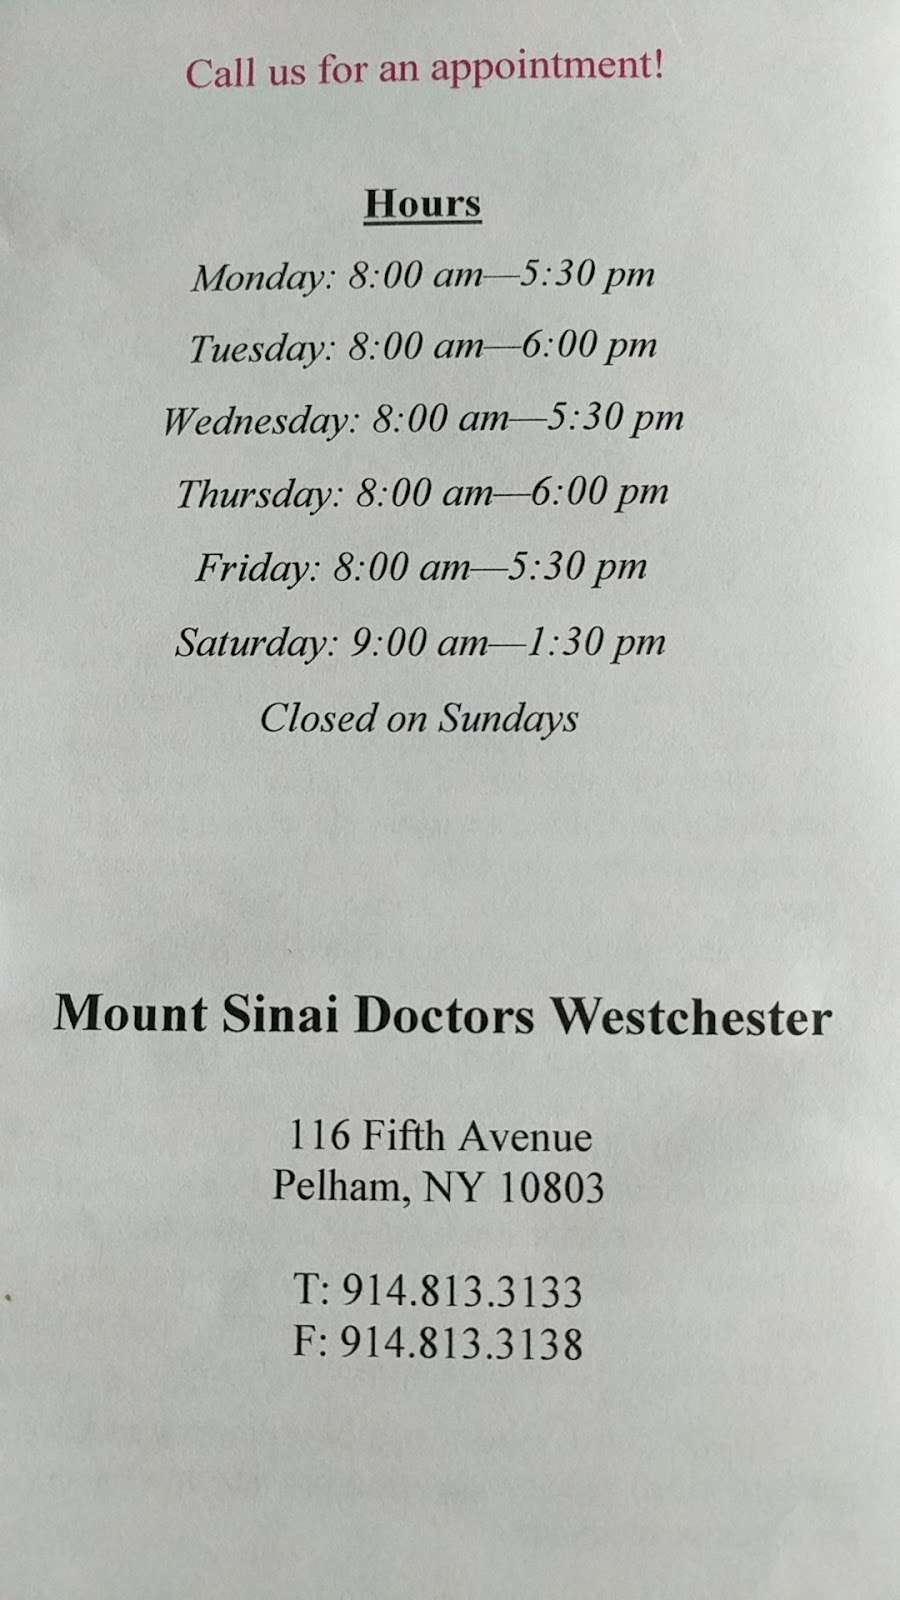 Mount Sinai Doctors Westchester - doctor  | Photo 2 of 2 | Address: 116 Fifth Ave, Pelham, NY 10803, USA | Phone: (914) 813-3133